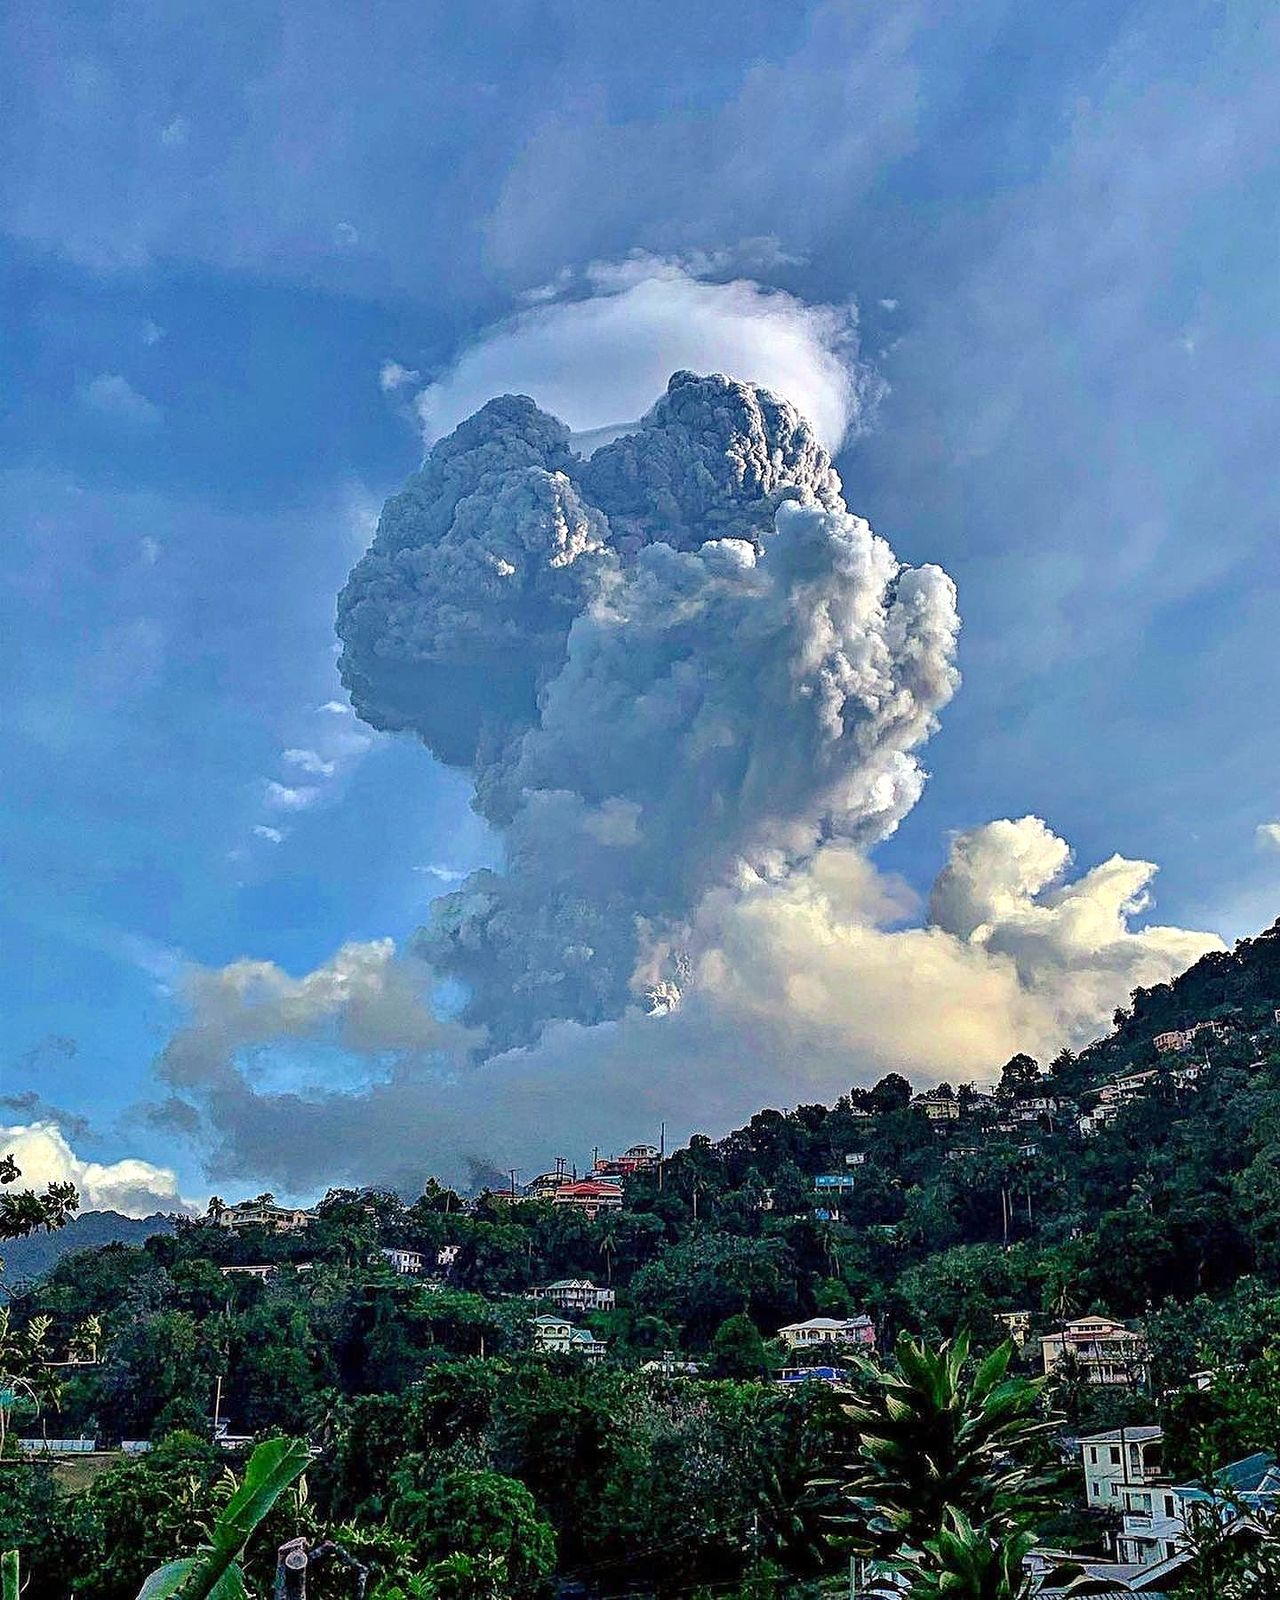 Soufriere of St. Vincent - explosion of 04/13/2021 / 6:30 am - SVG photo